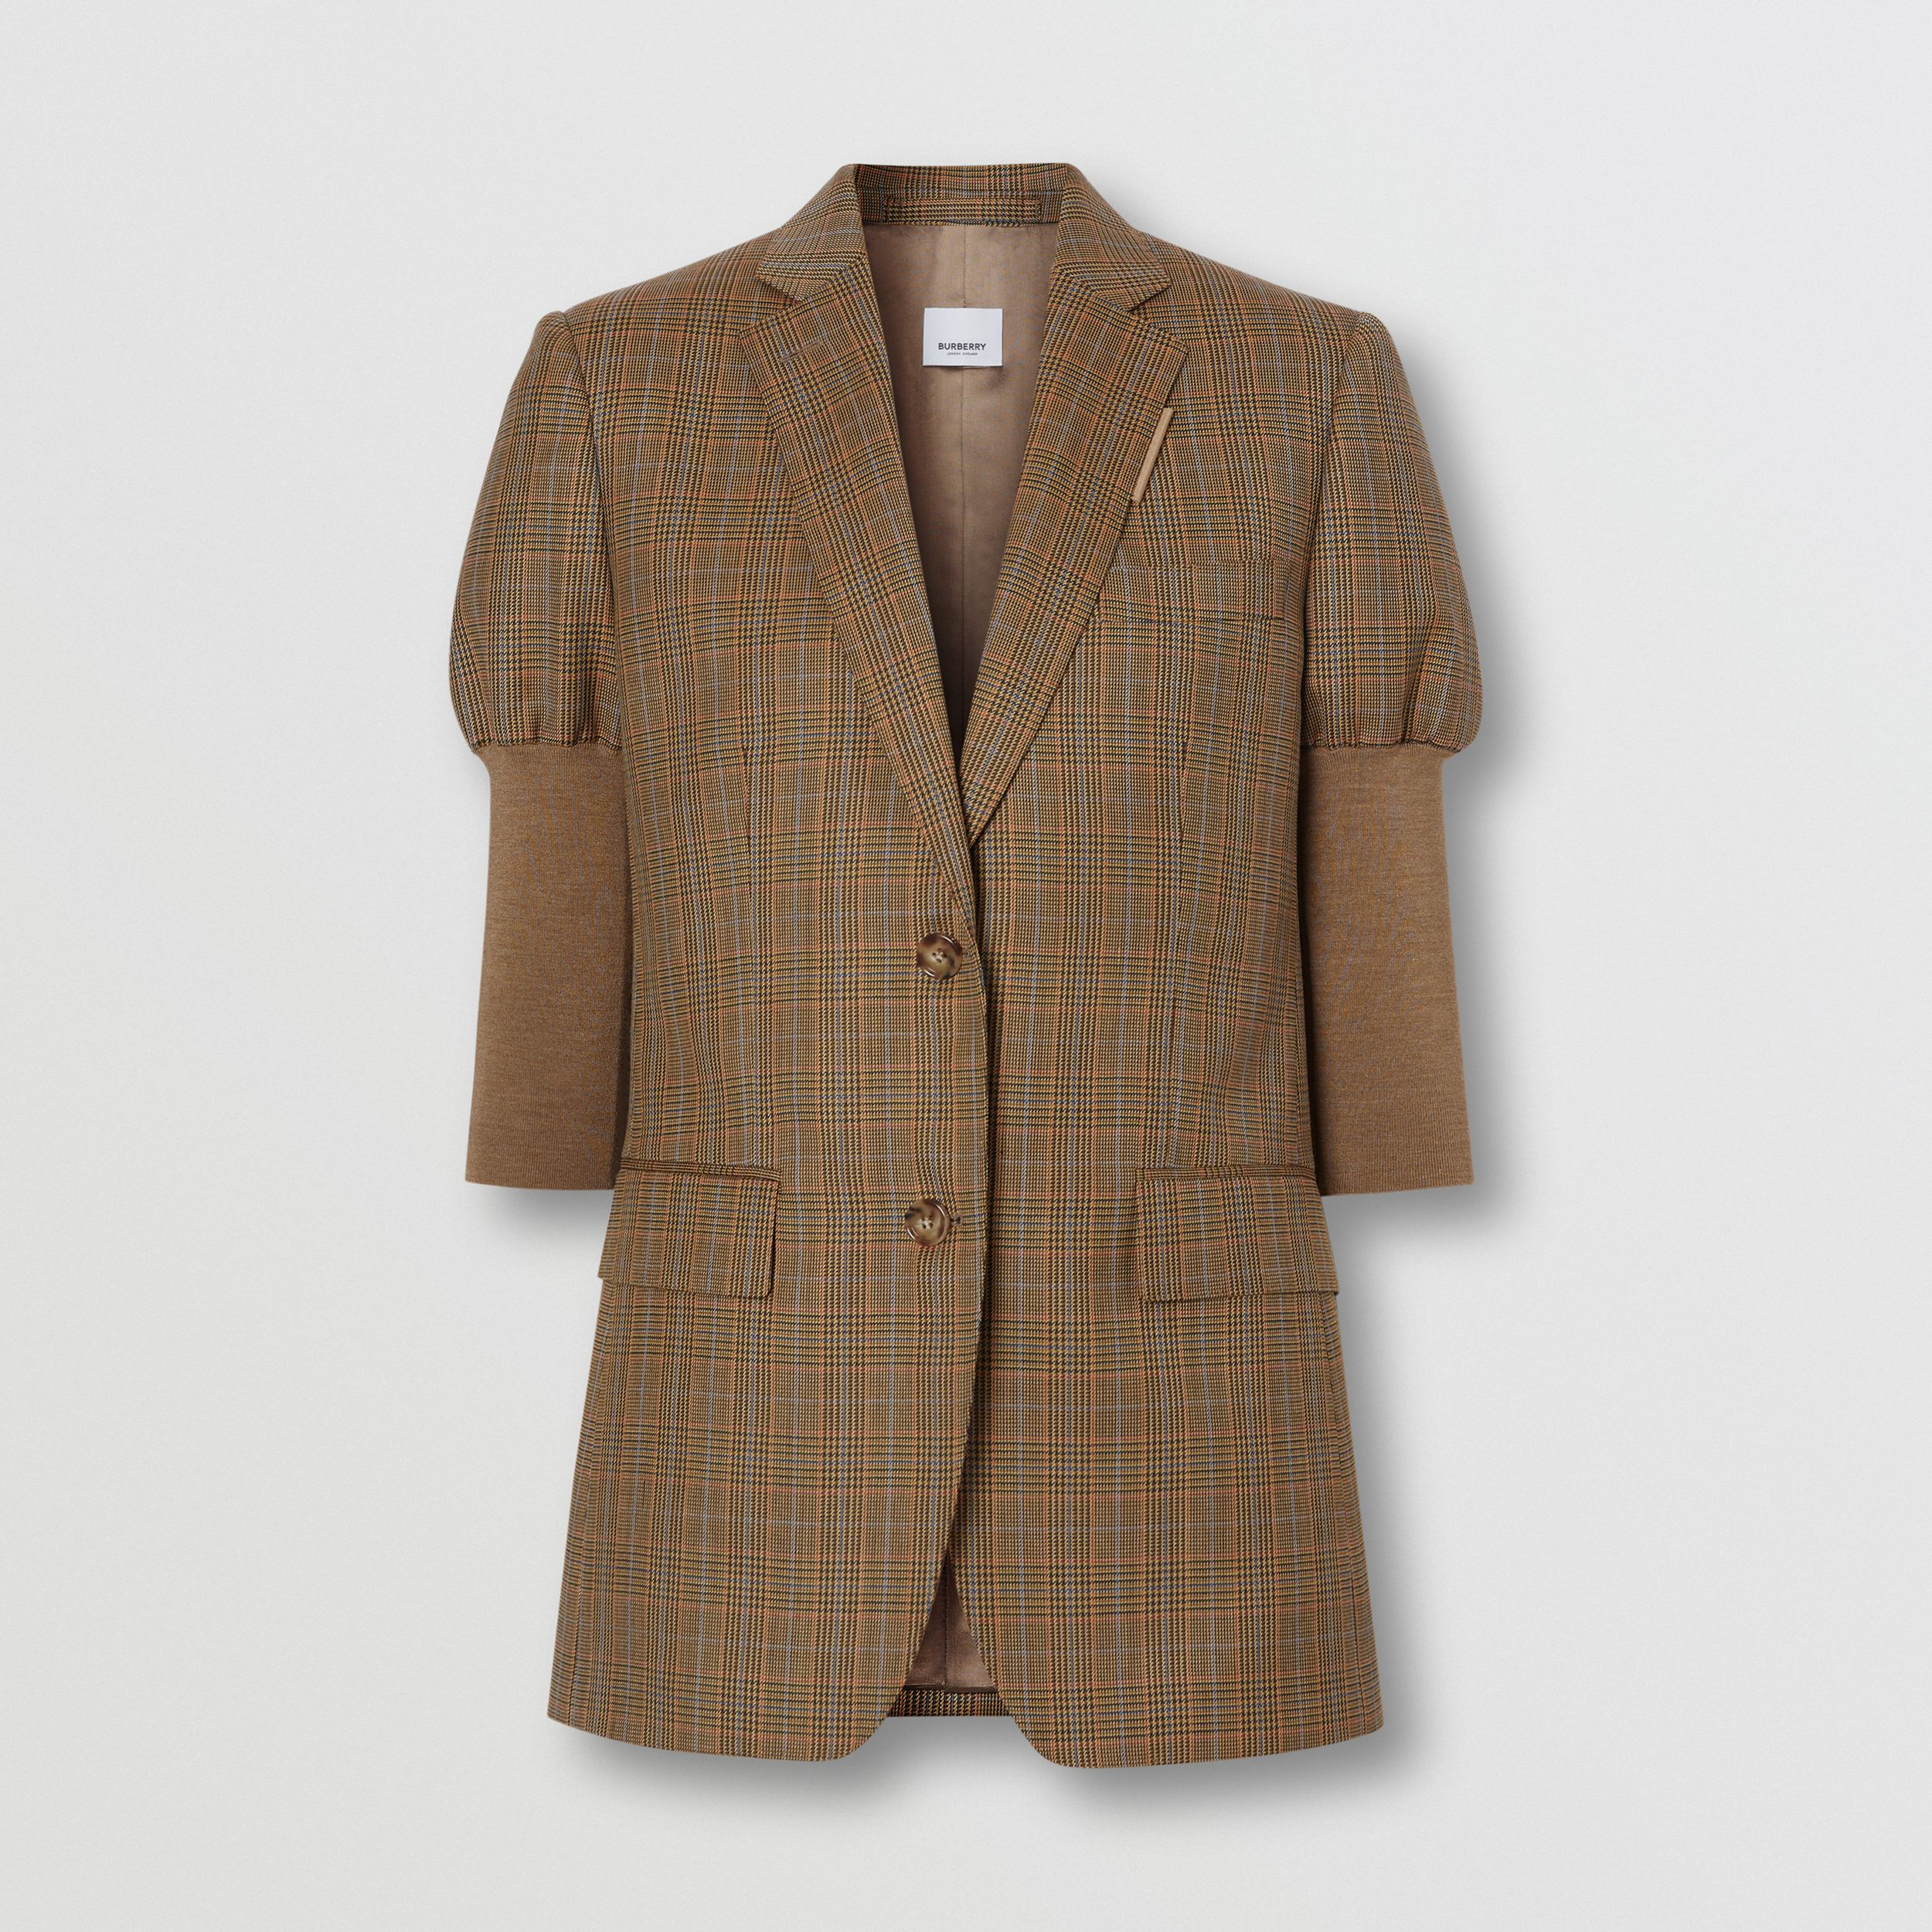 Knitted Sleeve Houndstooth Check Wool Tailored Jacket in Fawn - Women | Burberry Hong Kong S.A.R - 4